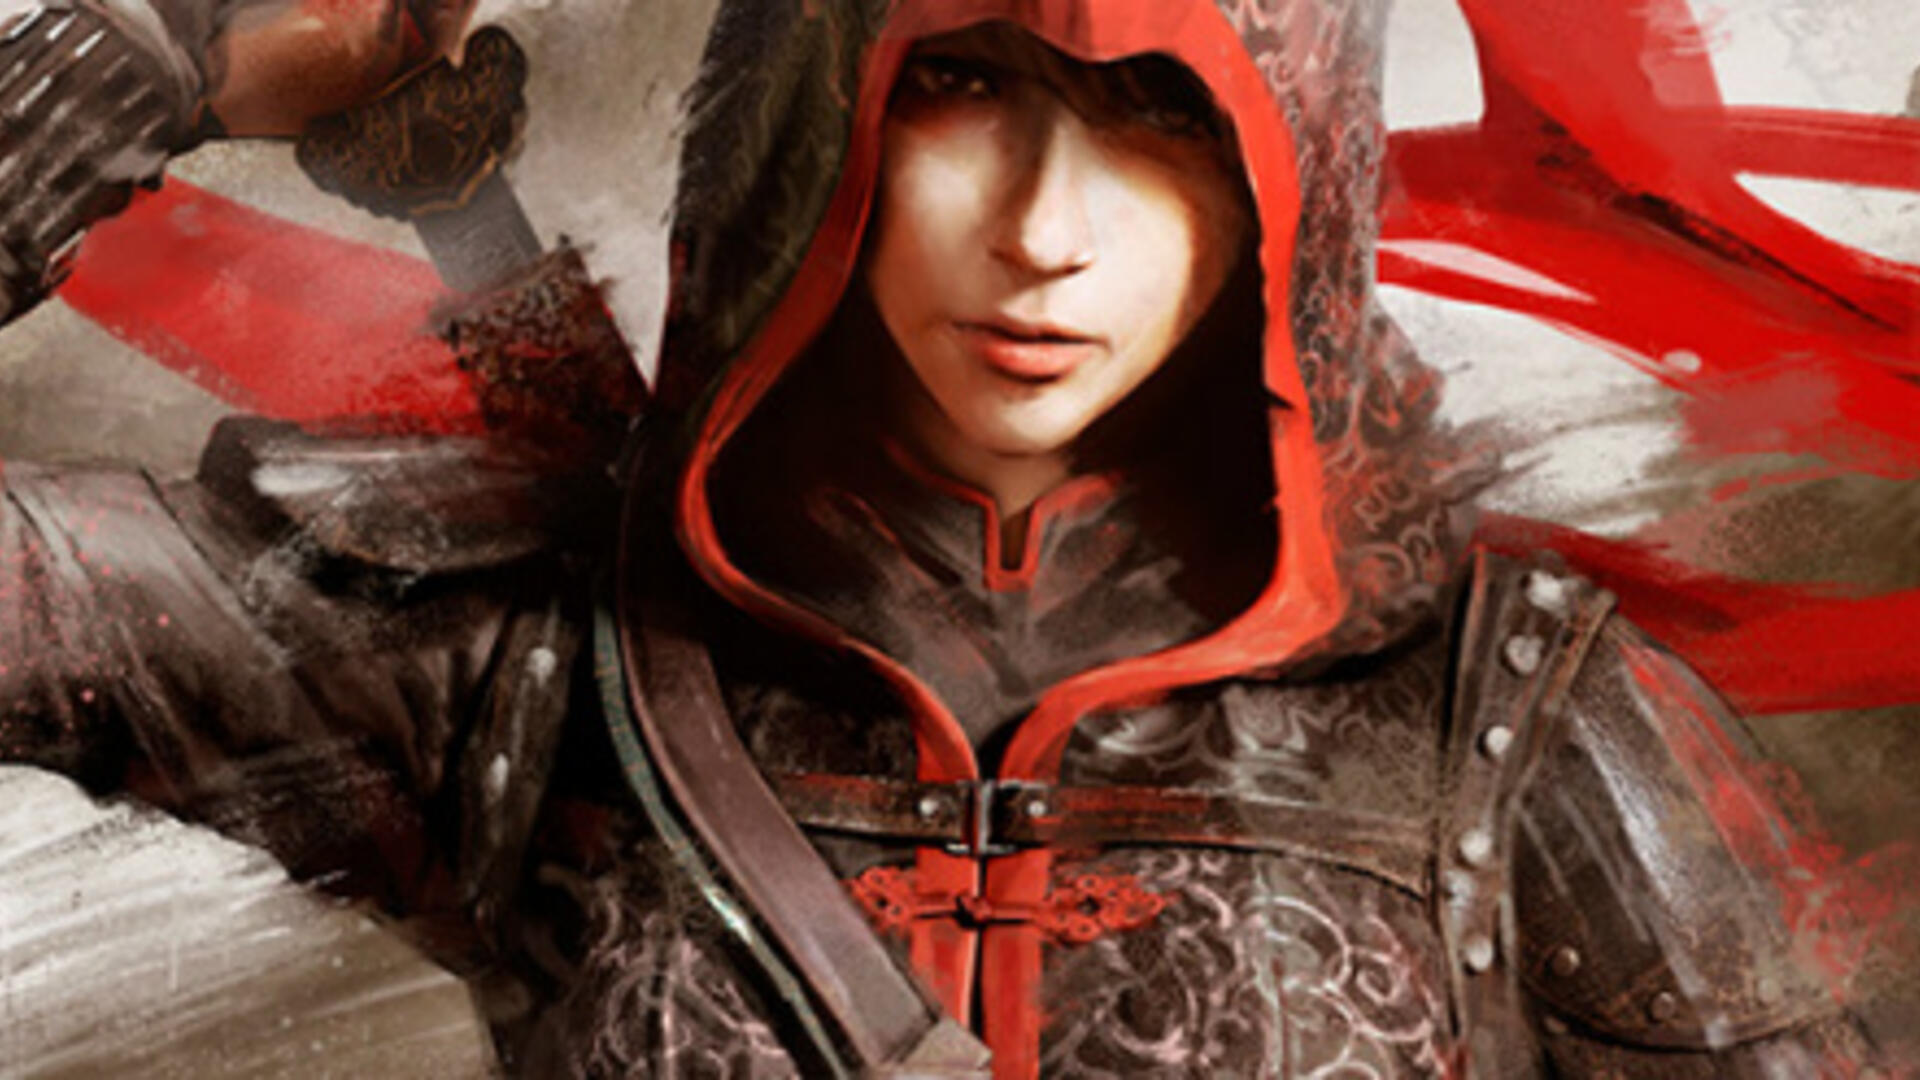 Assassin's Creed Heads to China in Unity DLC